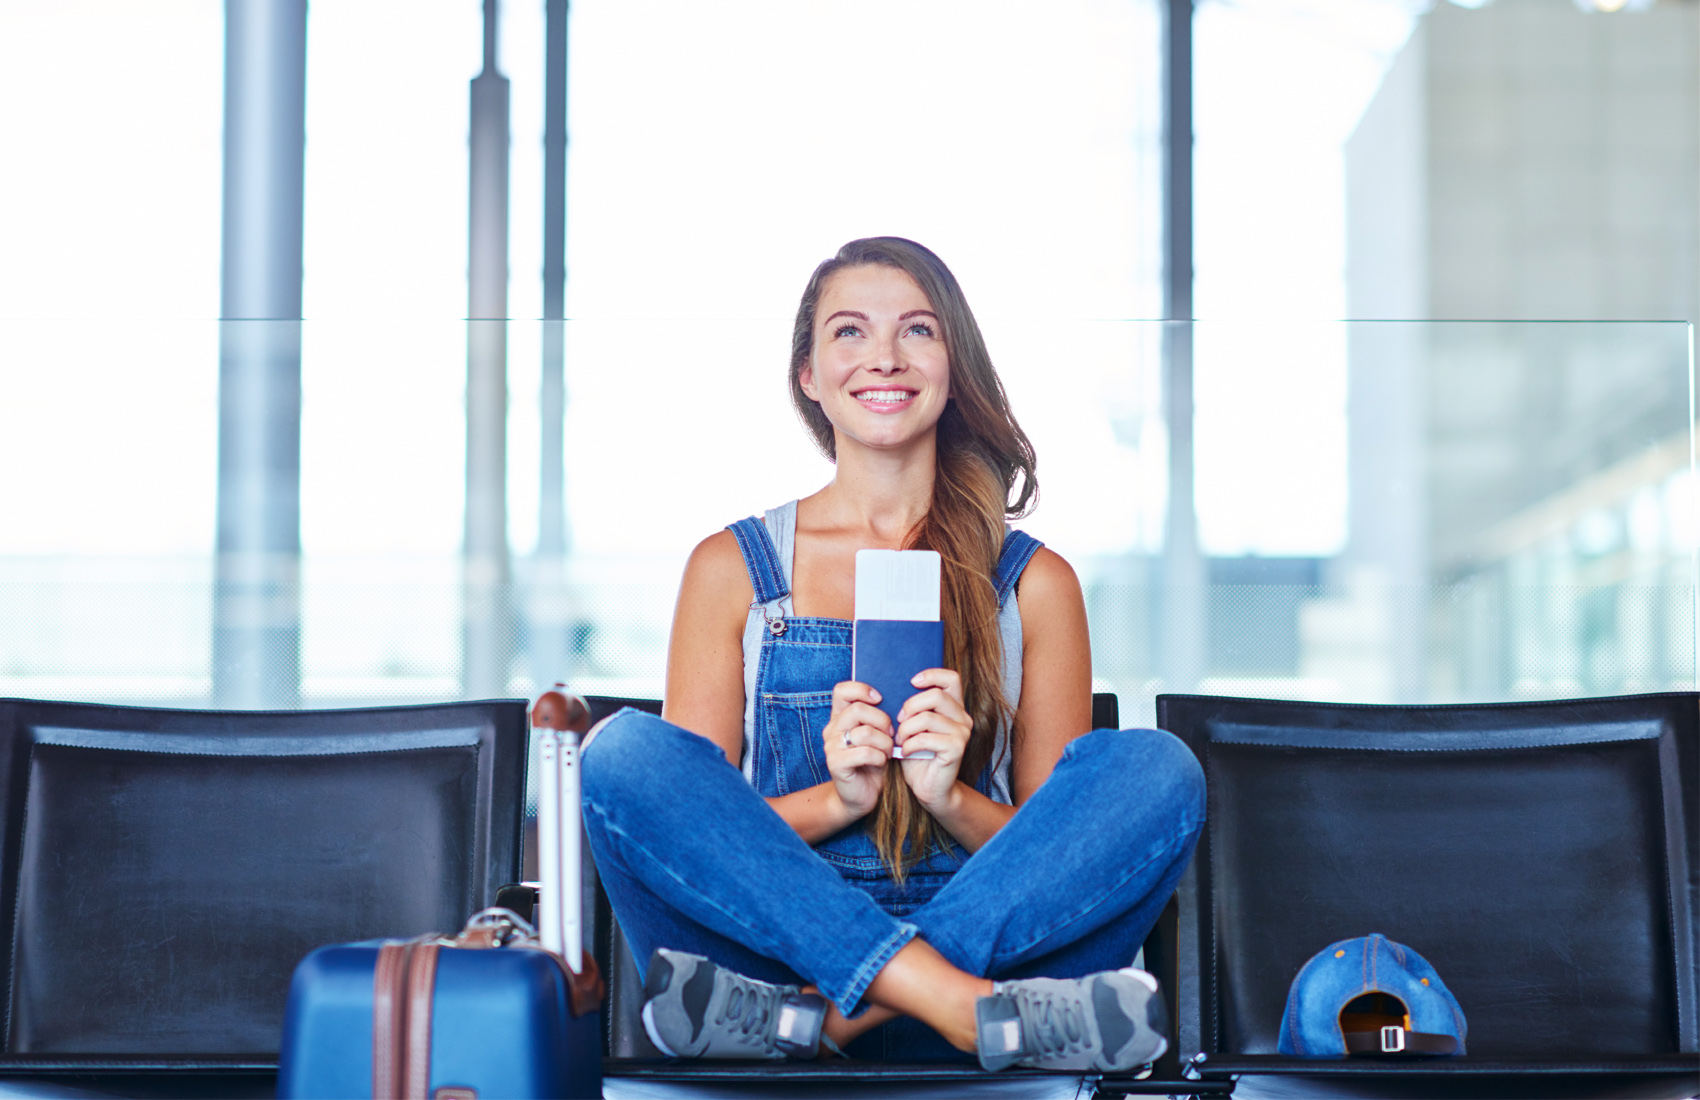 Teen girl grinning while holding ticket at airport